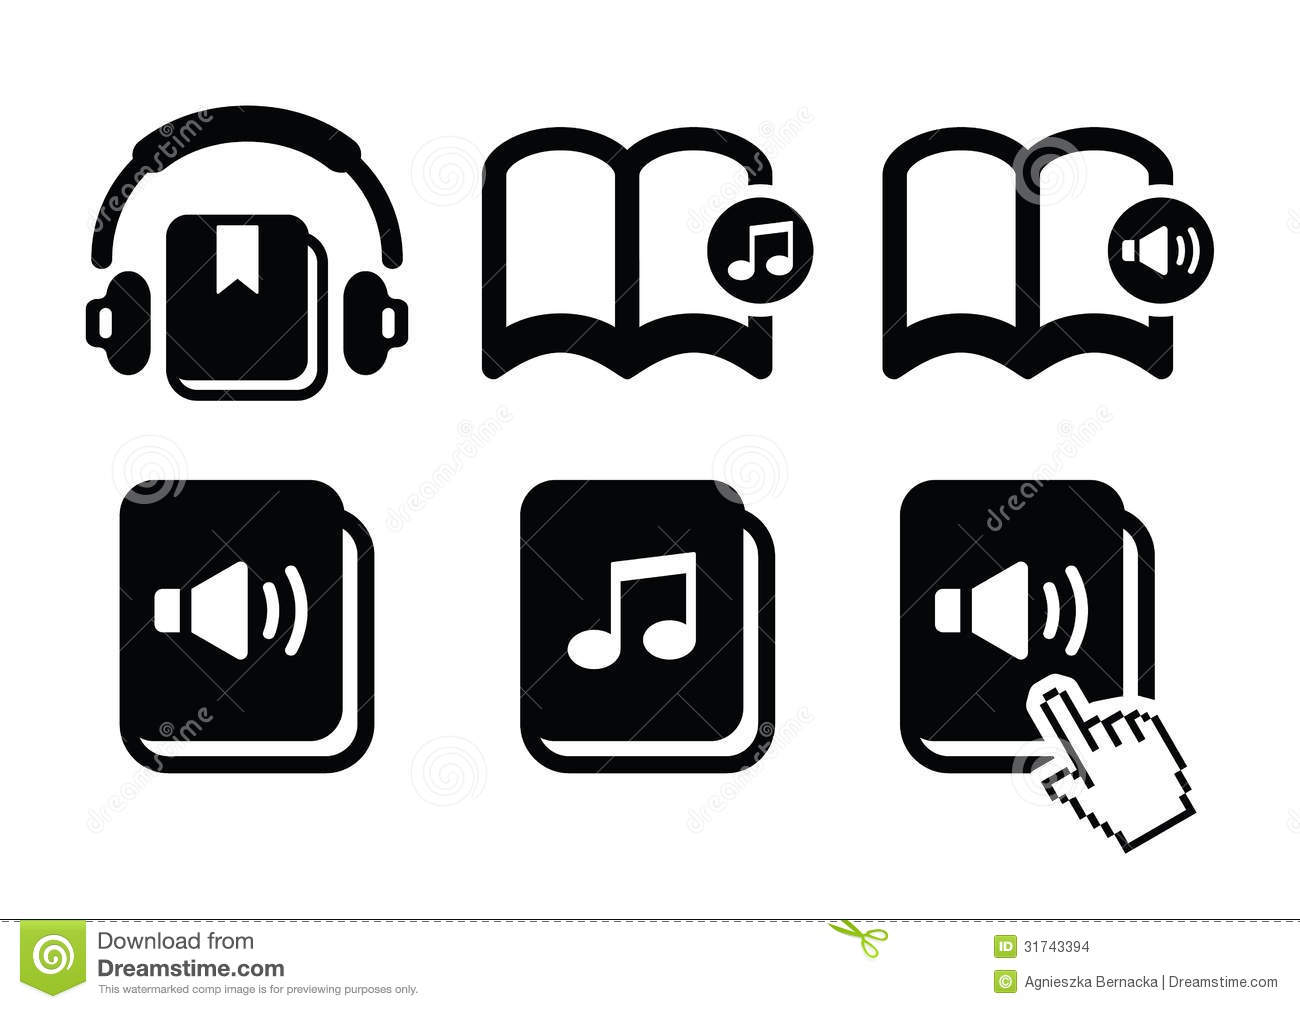 https://thumbs.dreamstime.com/z/audiobook-icons-set-listening-to-audiobooks-black-isolated-white-31743394.jpg